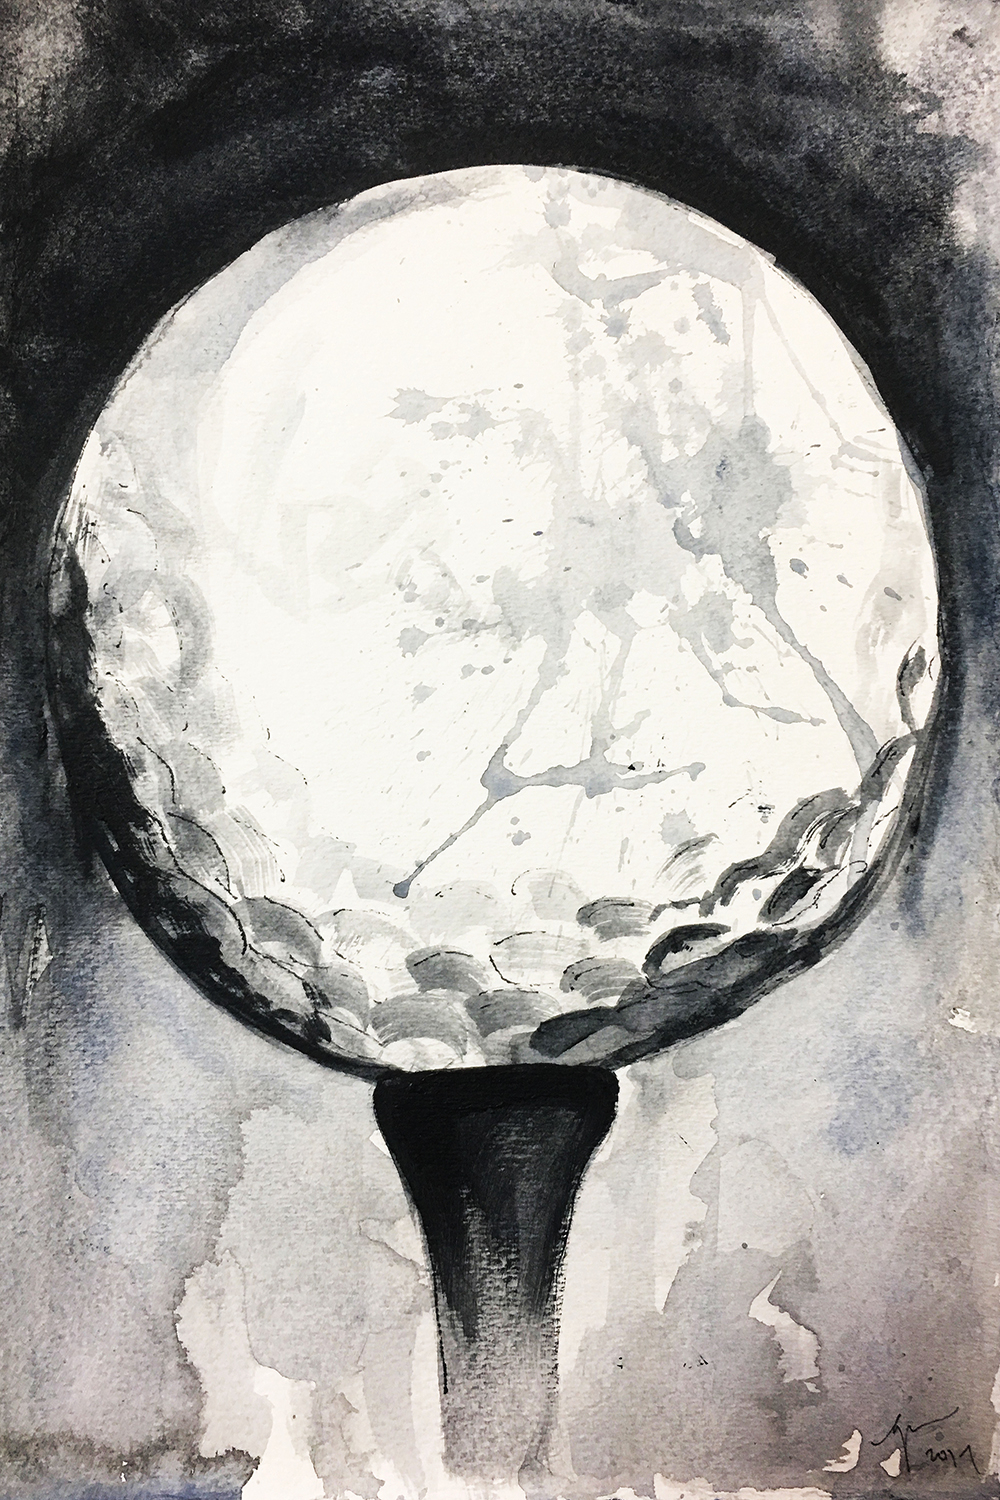 black and white close-up of a golf ball on a tee